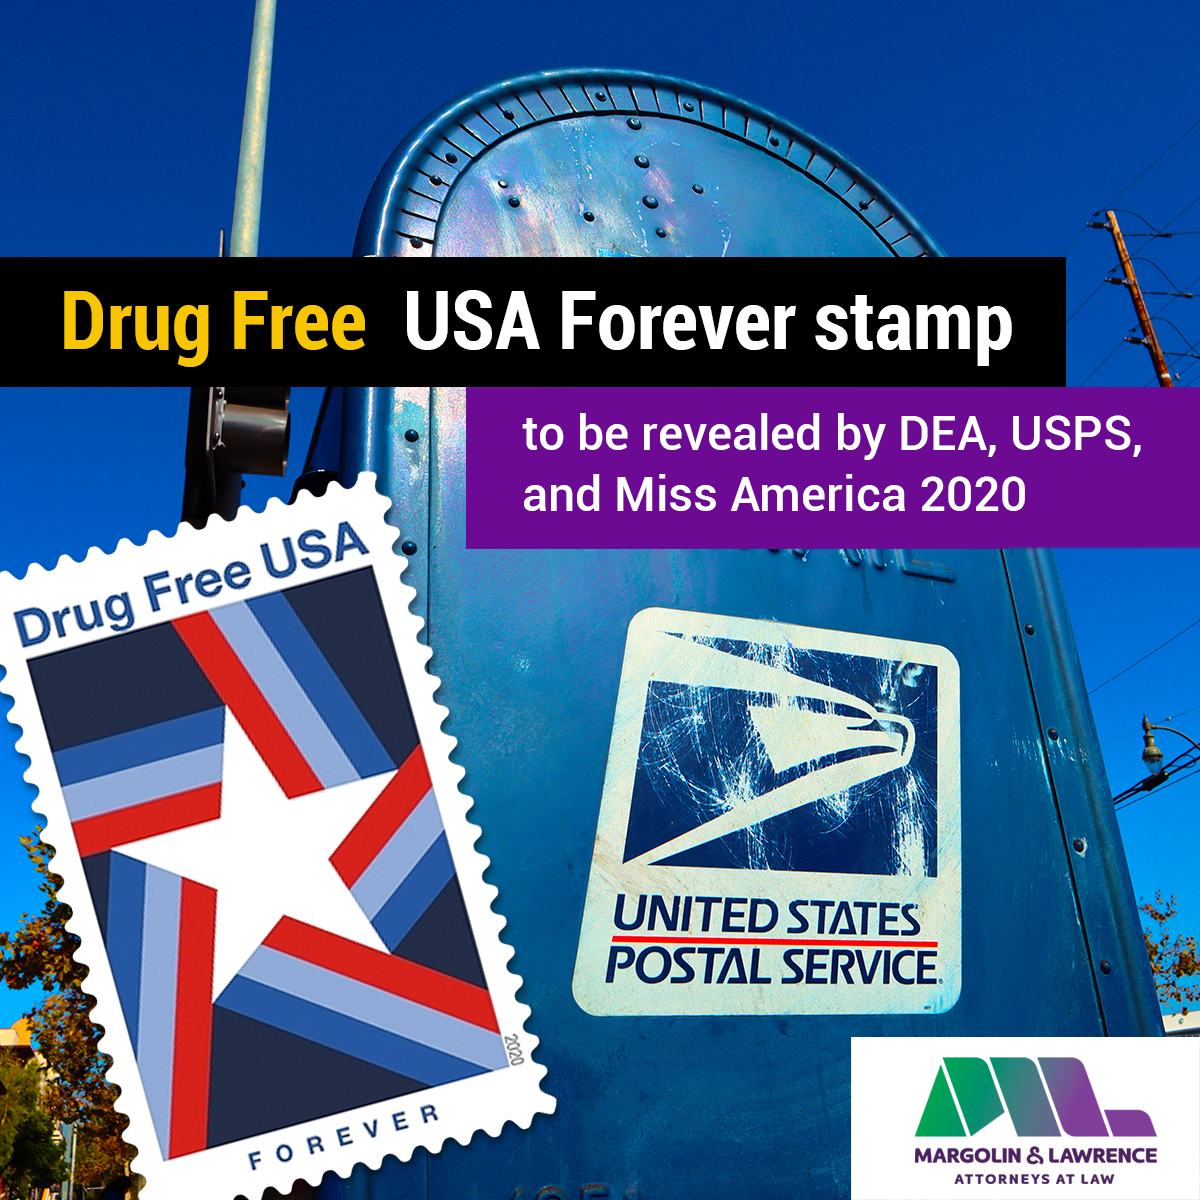 DEA, USPS, and Miss America 2020 to reveal Drug Free USA Forever stamp